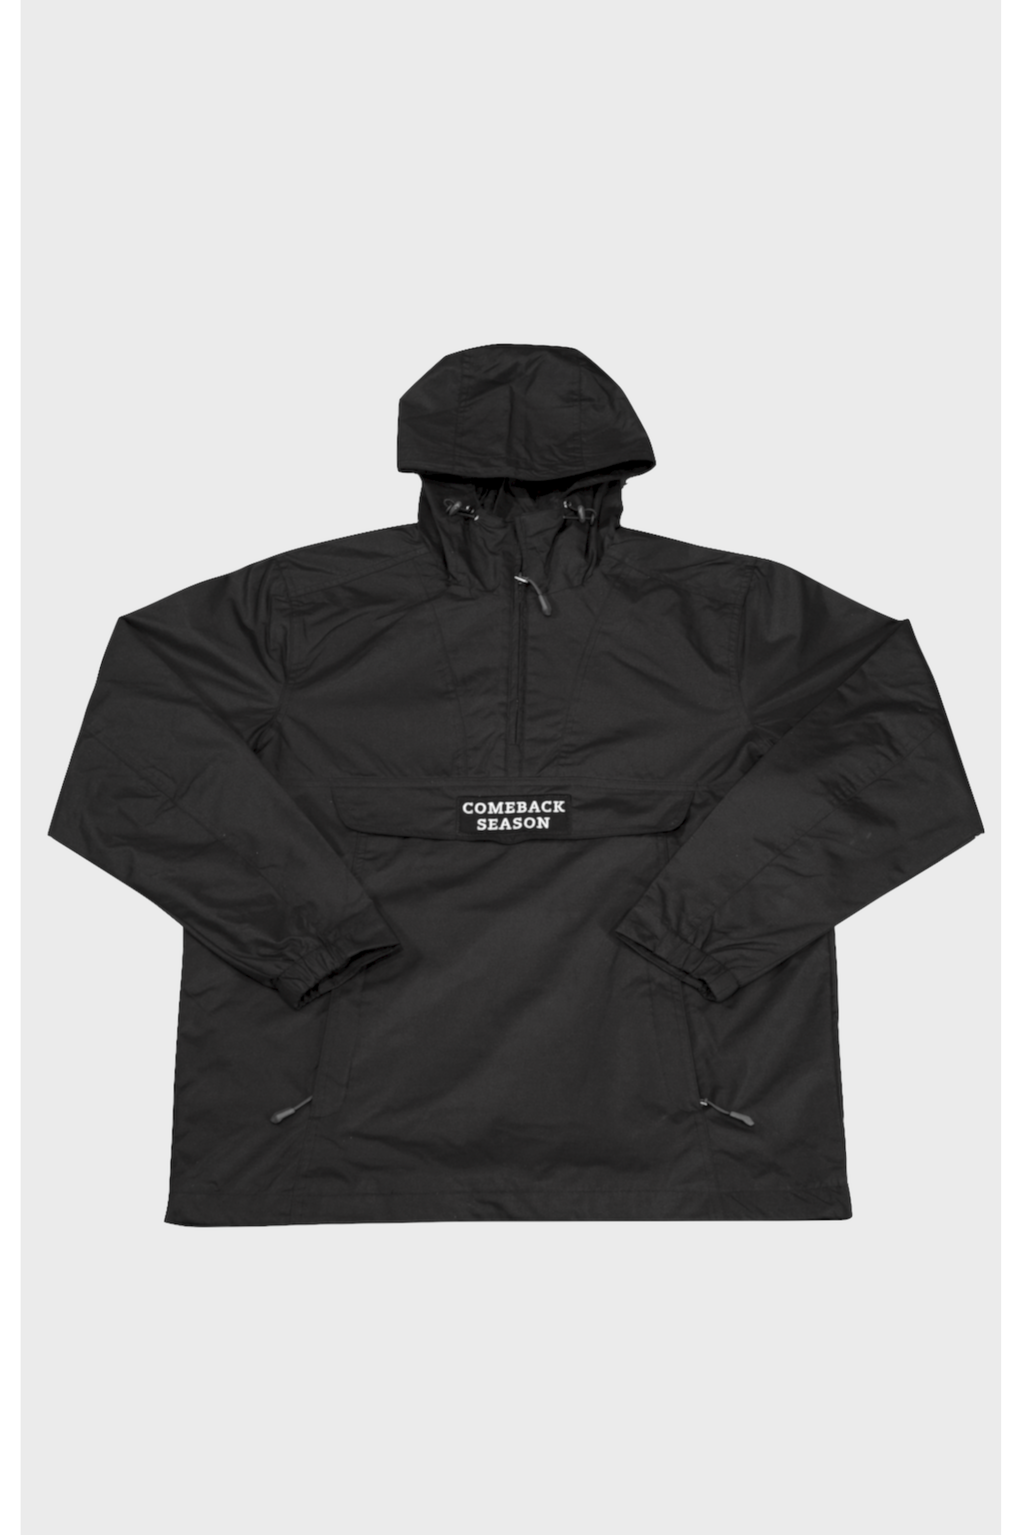 CBS Windbreaker Black